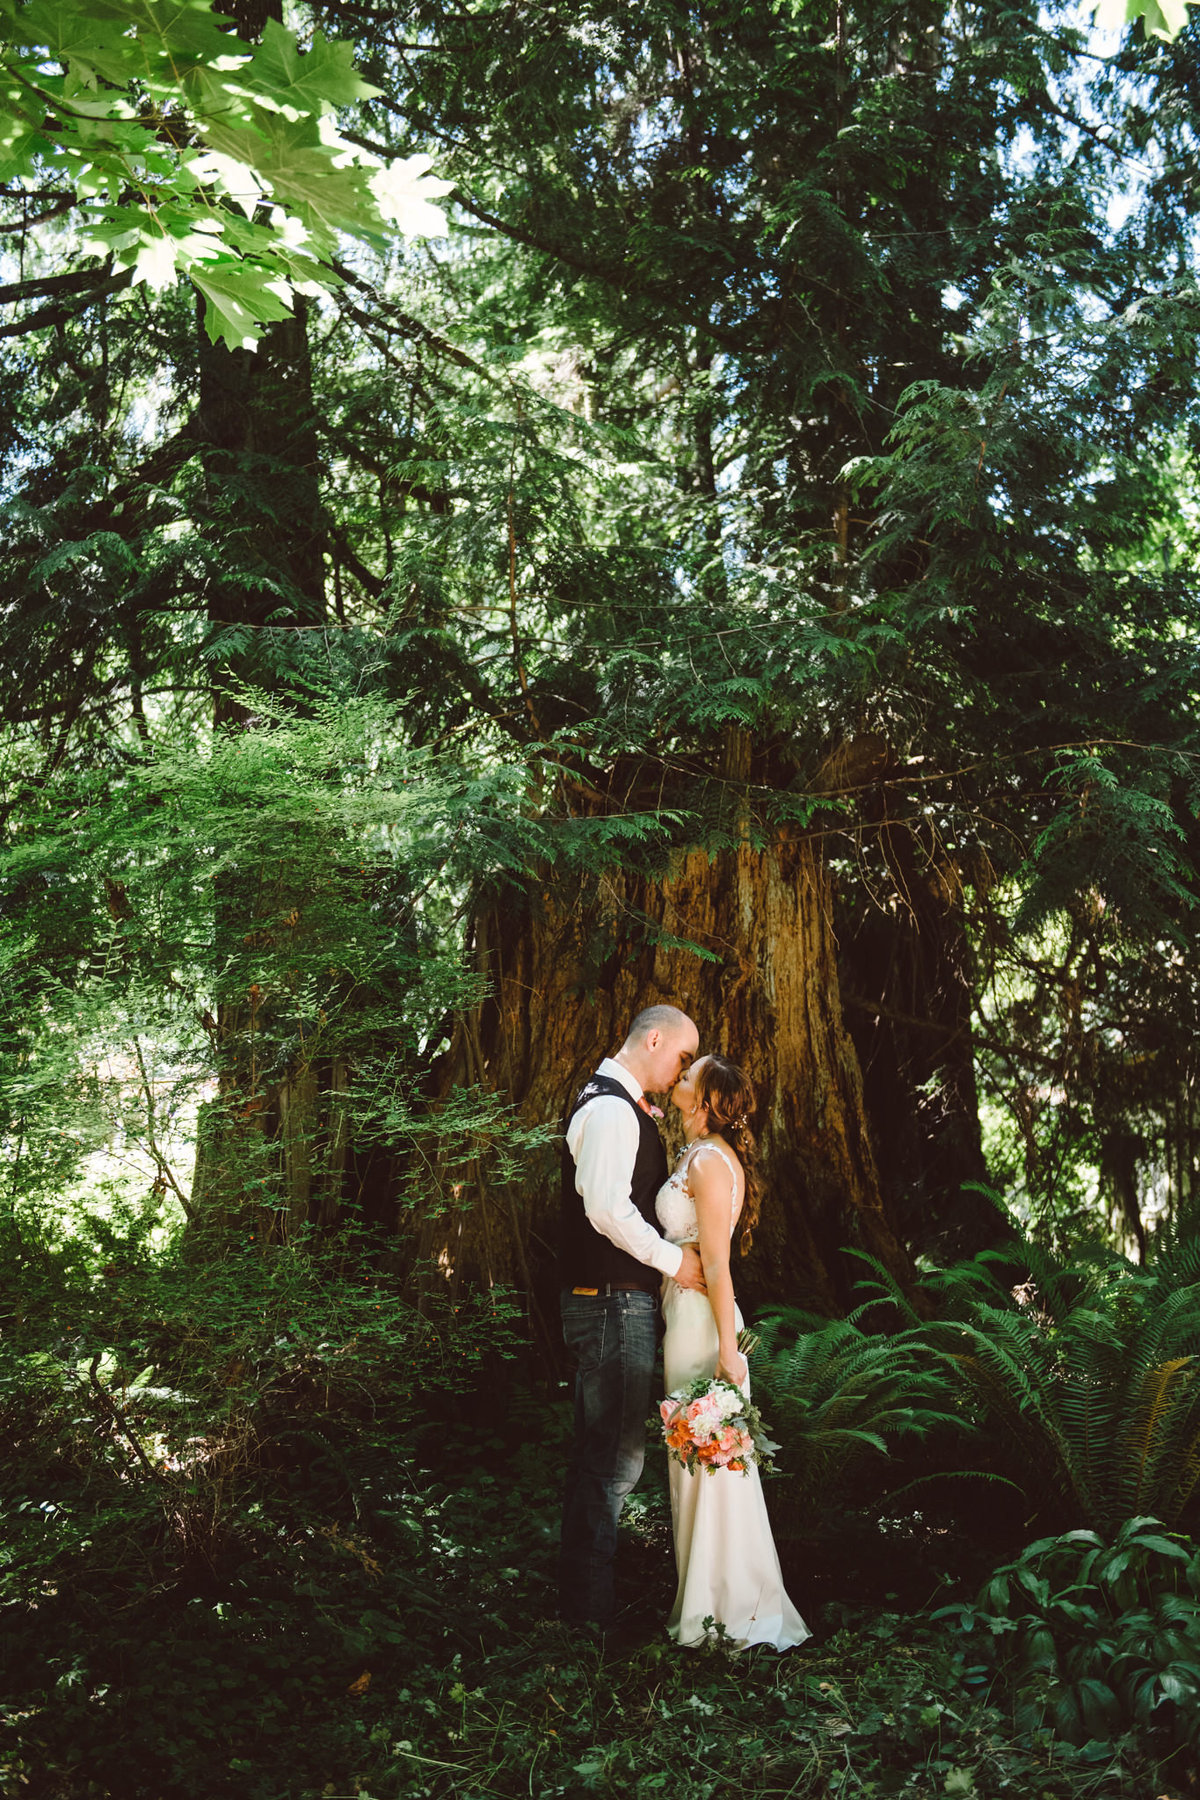 Seattle Wedding Photographer Karissa Roe TWIN WILLOW GARDENS WEDDING PHOTOS-1